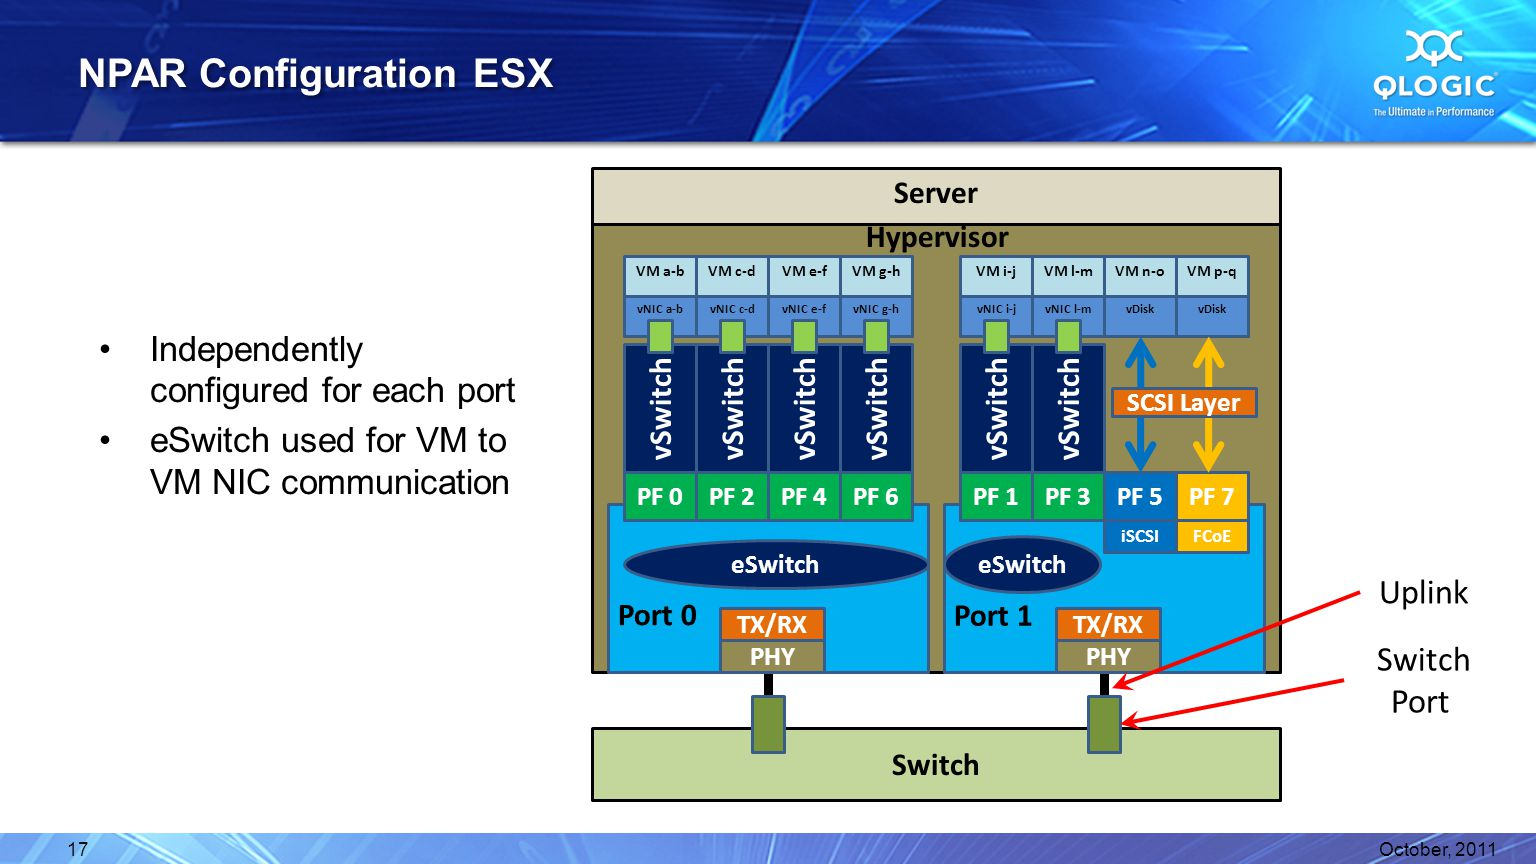 Server Port 0 NPAR Configuration ESX October, 201117 VM p-q vDisk Switch Switch Port Uplink Hypervisor eSwitch PF 0 PHY TX/RX Port 1 eSwitch PHY TX/RX PF 2PF 4PF 6PF 1PF 3PF 5PF 7 VM n-o vDisk VM l-m vNIC l-m vSwitch VM i-j vNIC i-j vSwitch VM g-h vNIC g-h vSwitch VM e-f vNIC e-f vSwitch VM c-d vNIC c-d vSwitch VM a-b vNIC a-b vSwitch Independently configured for each port eSwitch used for VM to VM NIC communication iSCSIFCoE SCSI Layer